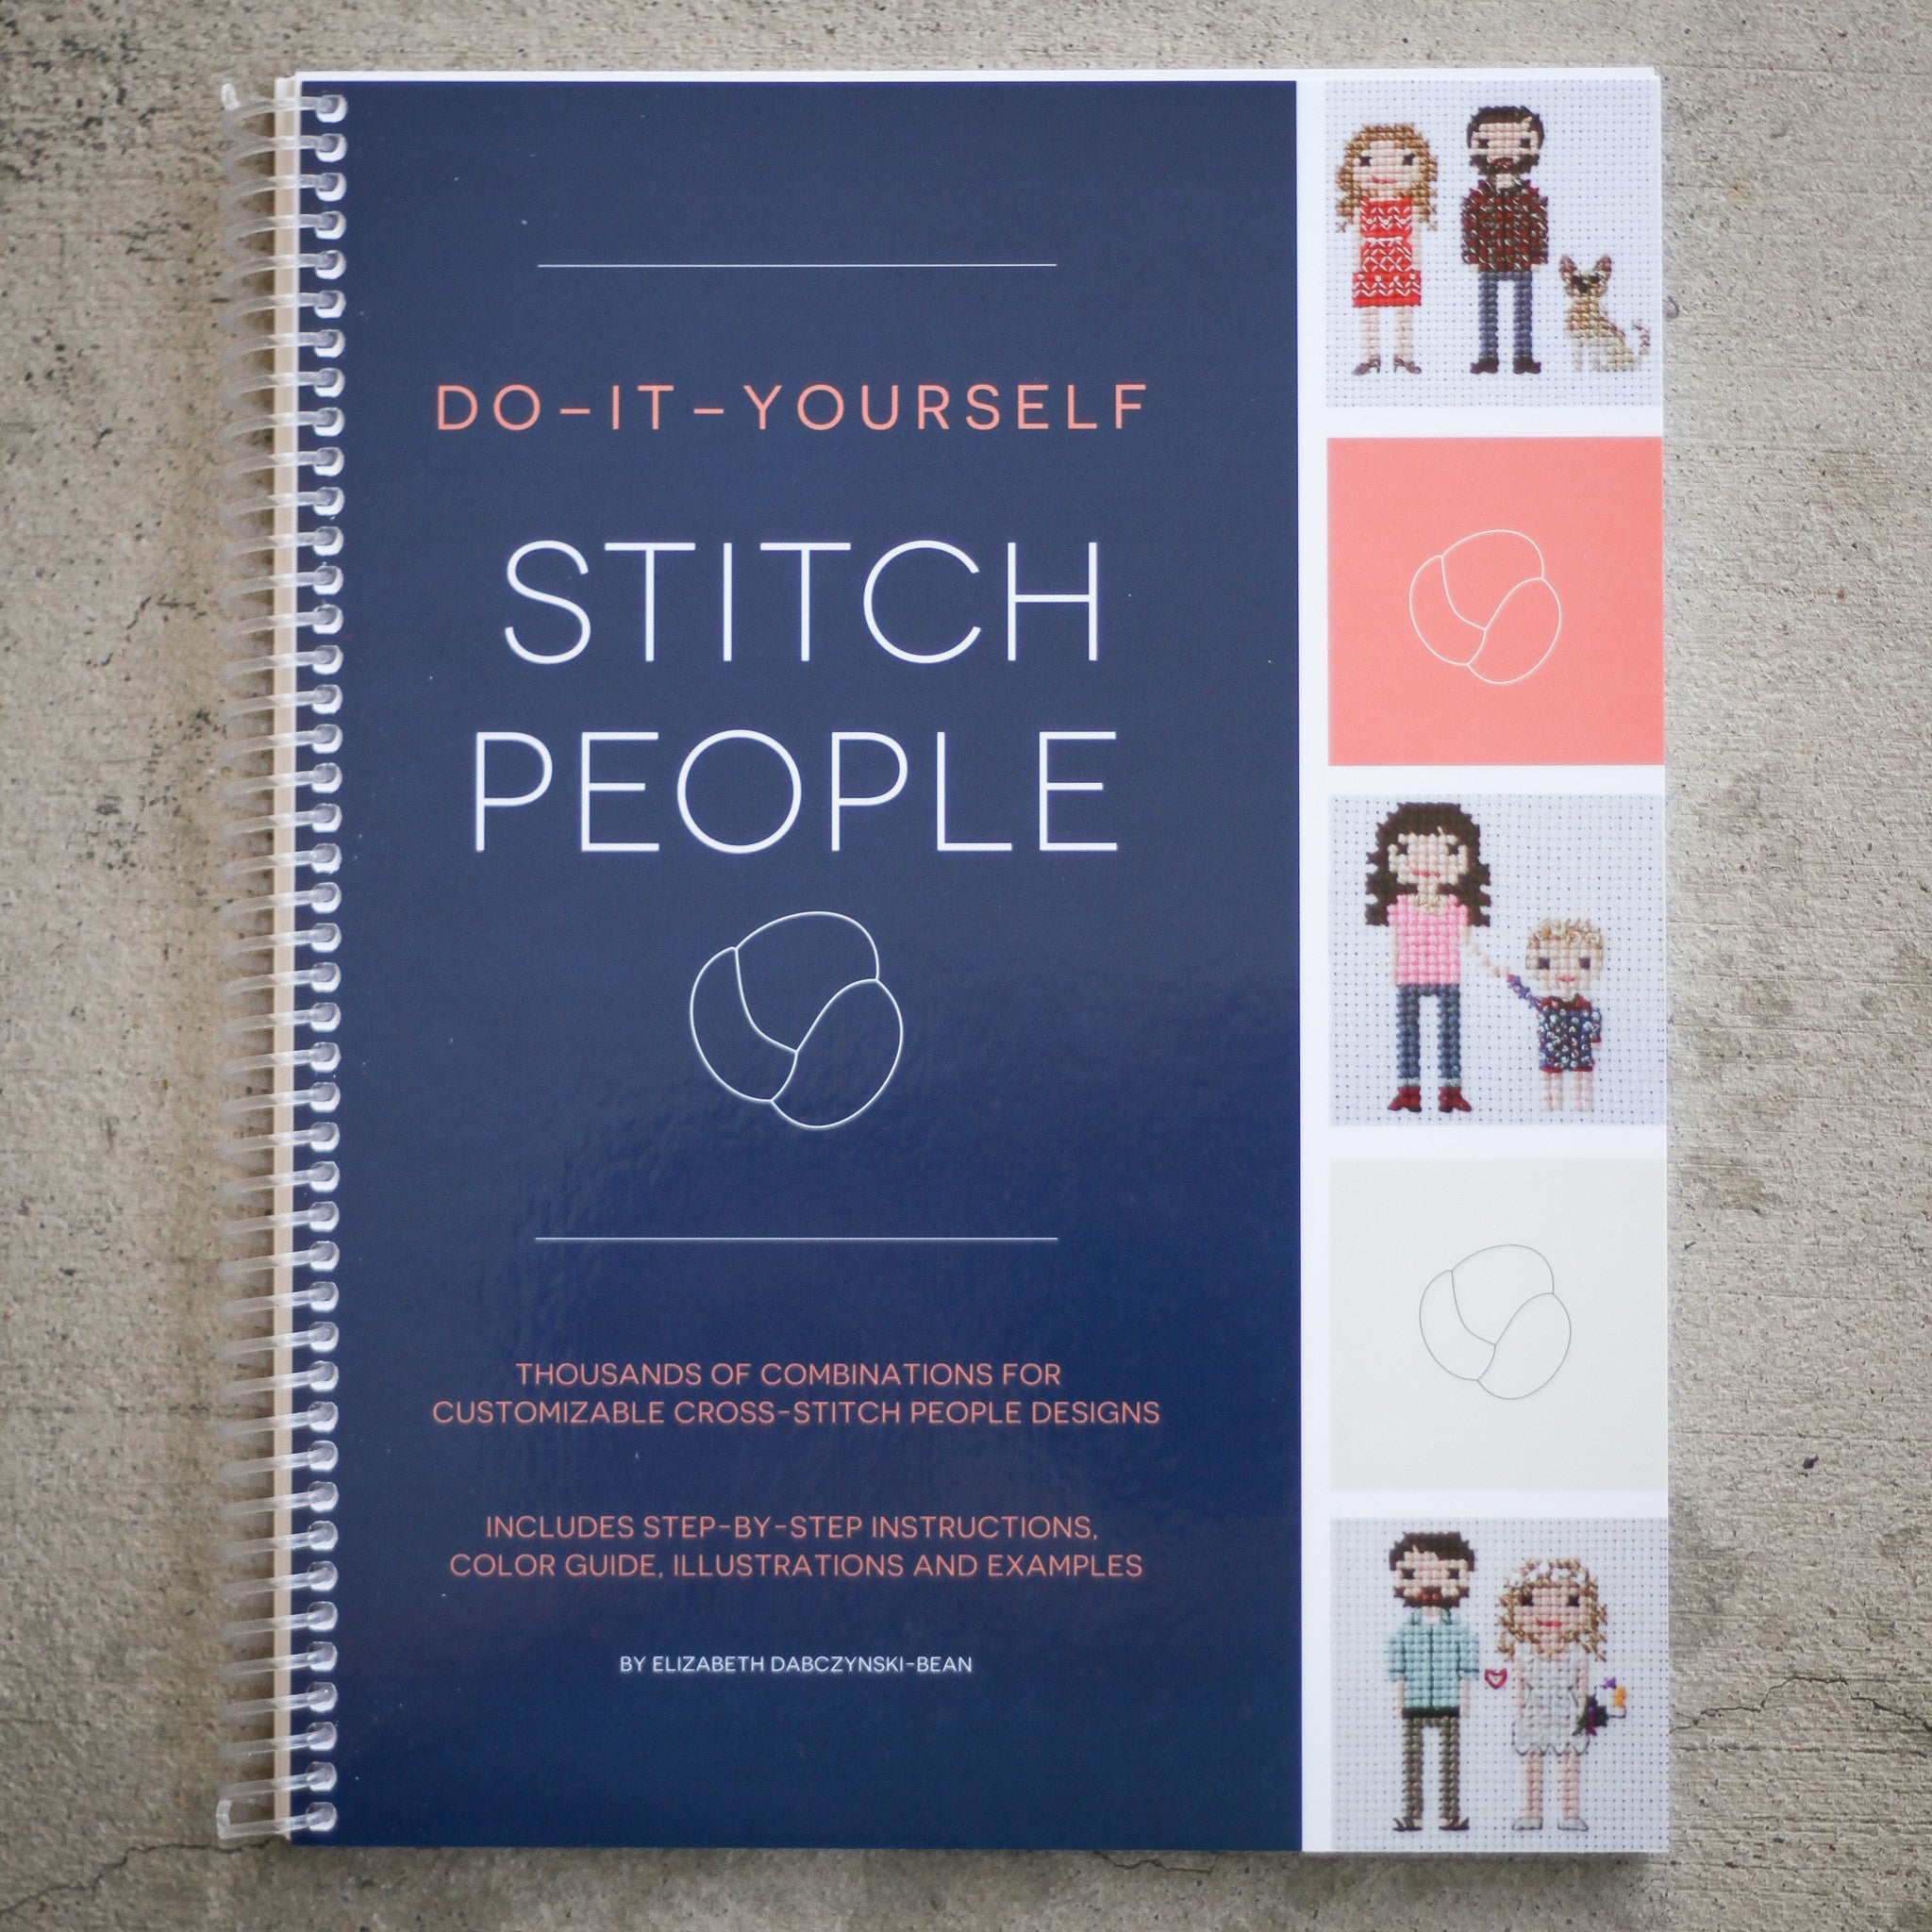 Diy stitch people book cross stitch portrait patterns do it yourself stitch people book solutioingenieria